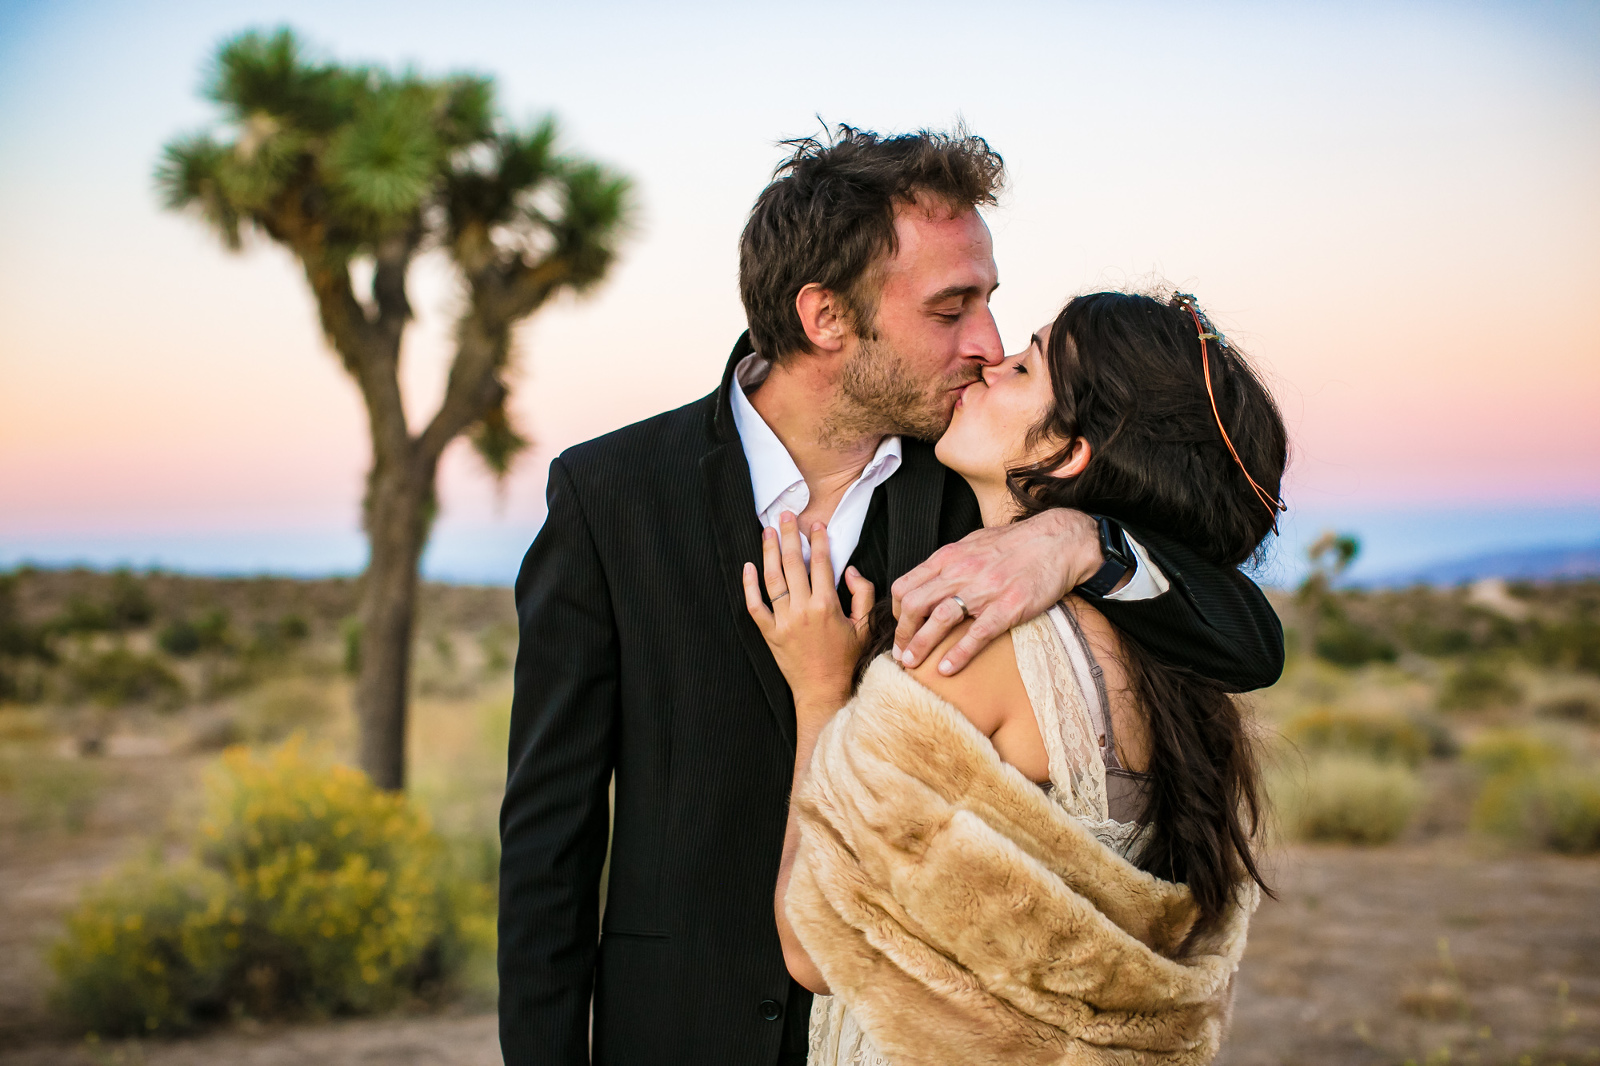 Elopement at sunset in front of a Joshua Tree.